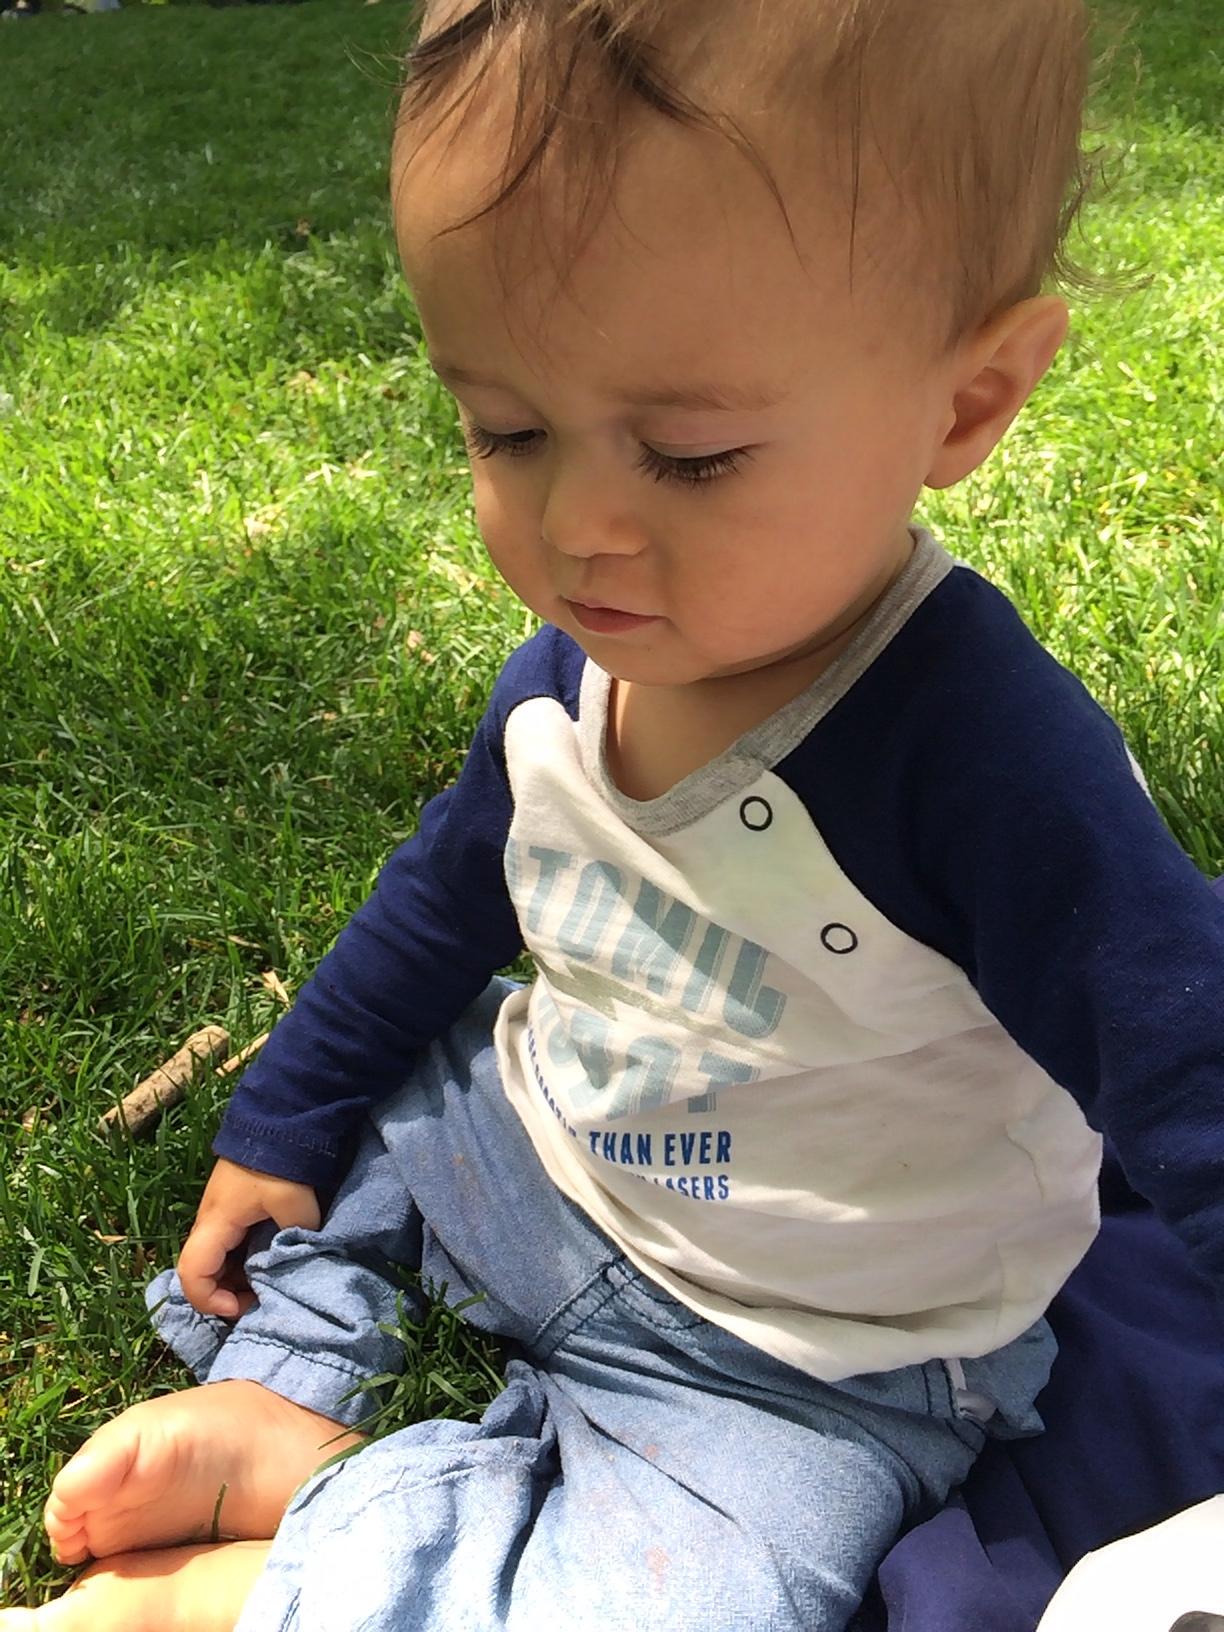 Baby boy o sitting on grass